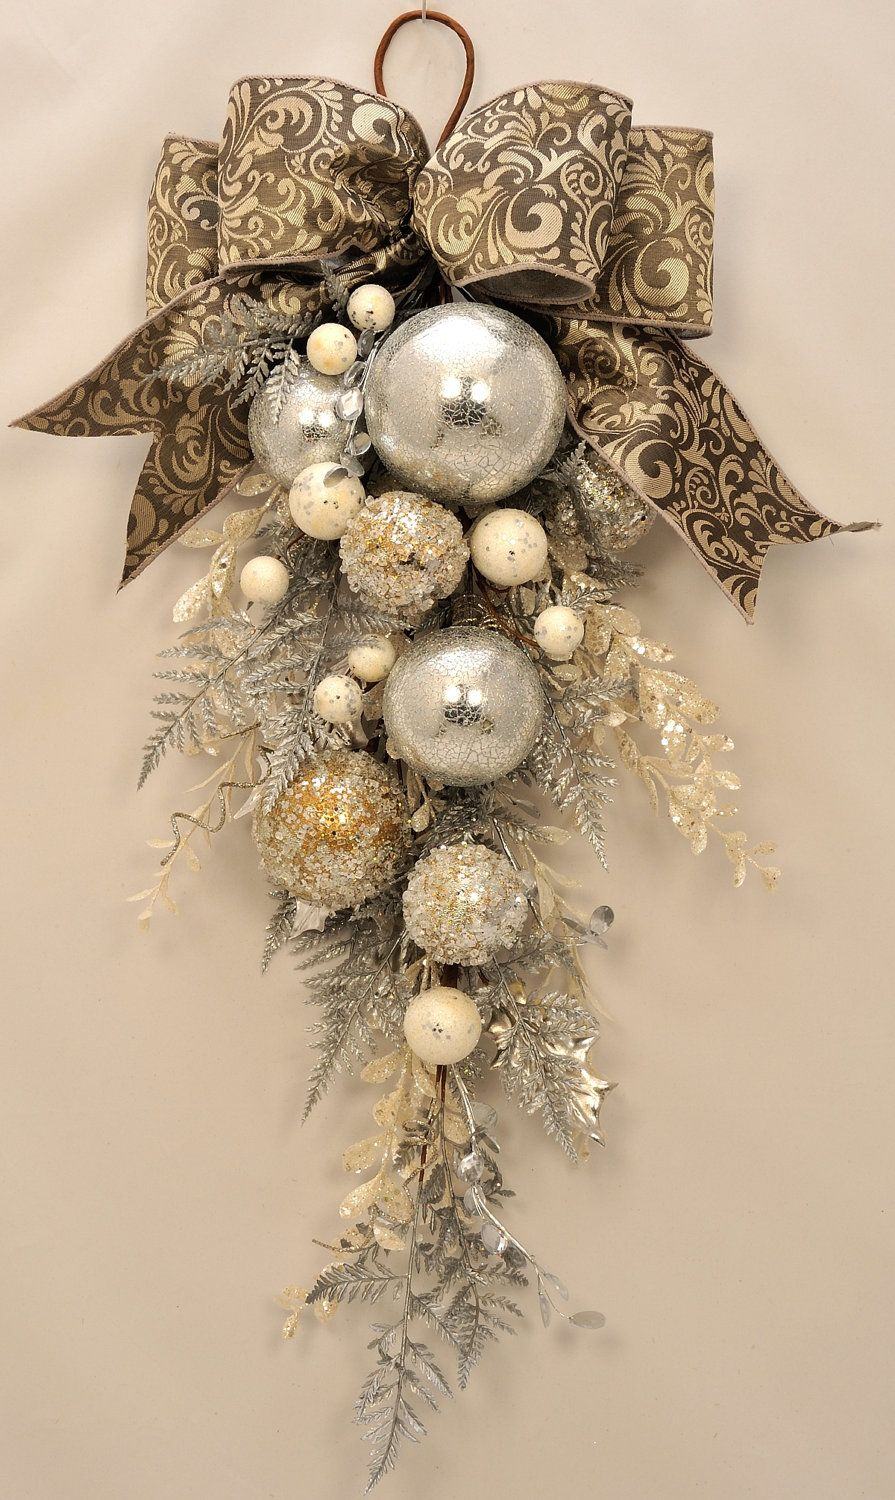 elegant christmas stunning ornament and crystal christmas replace the gold elements with white and blue or whatever your colors are and this will always